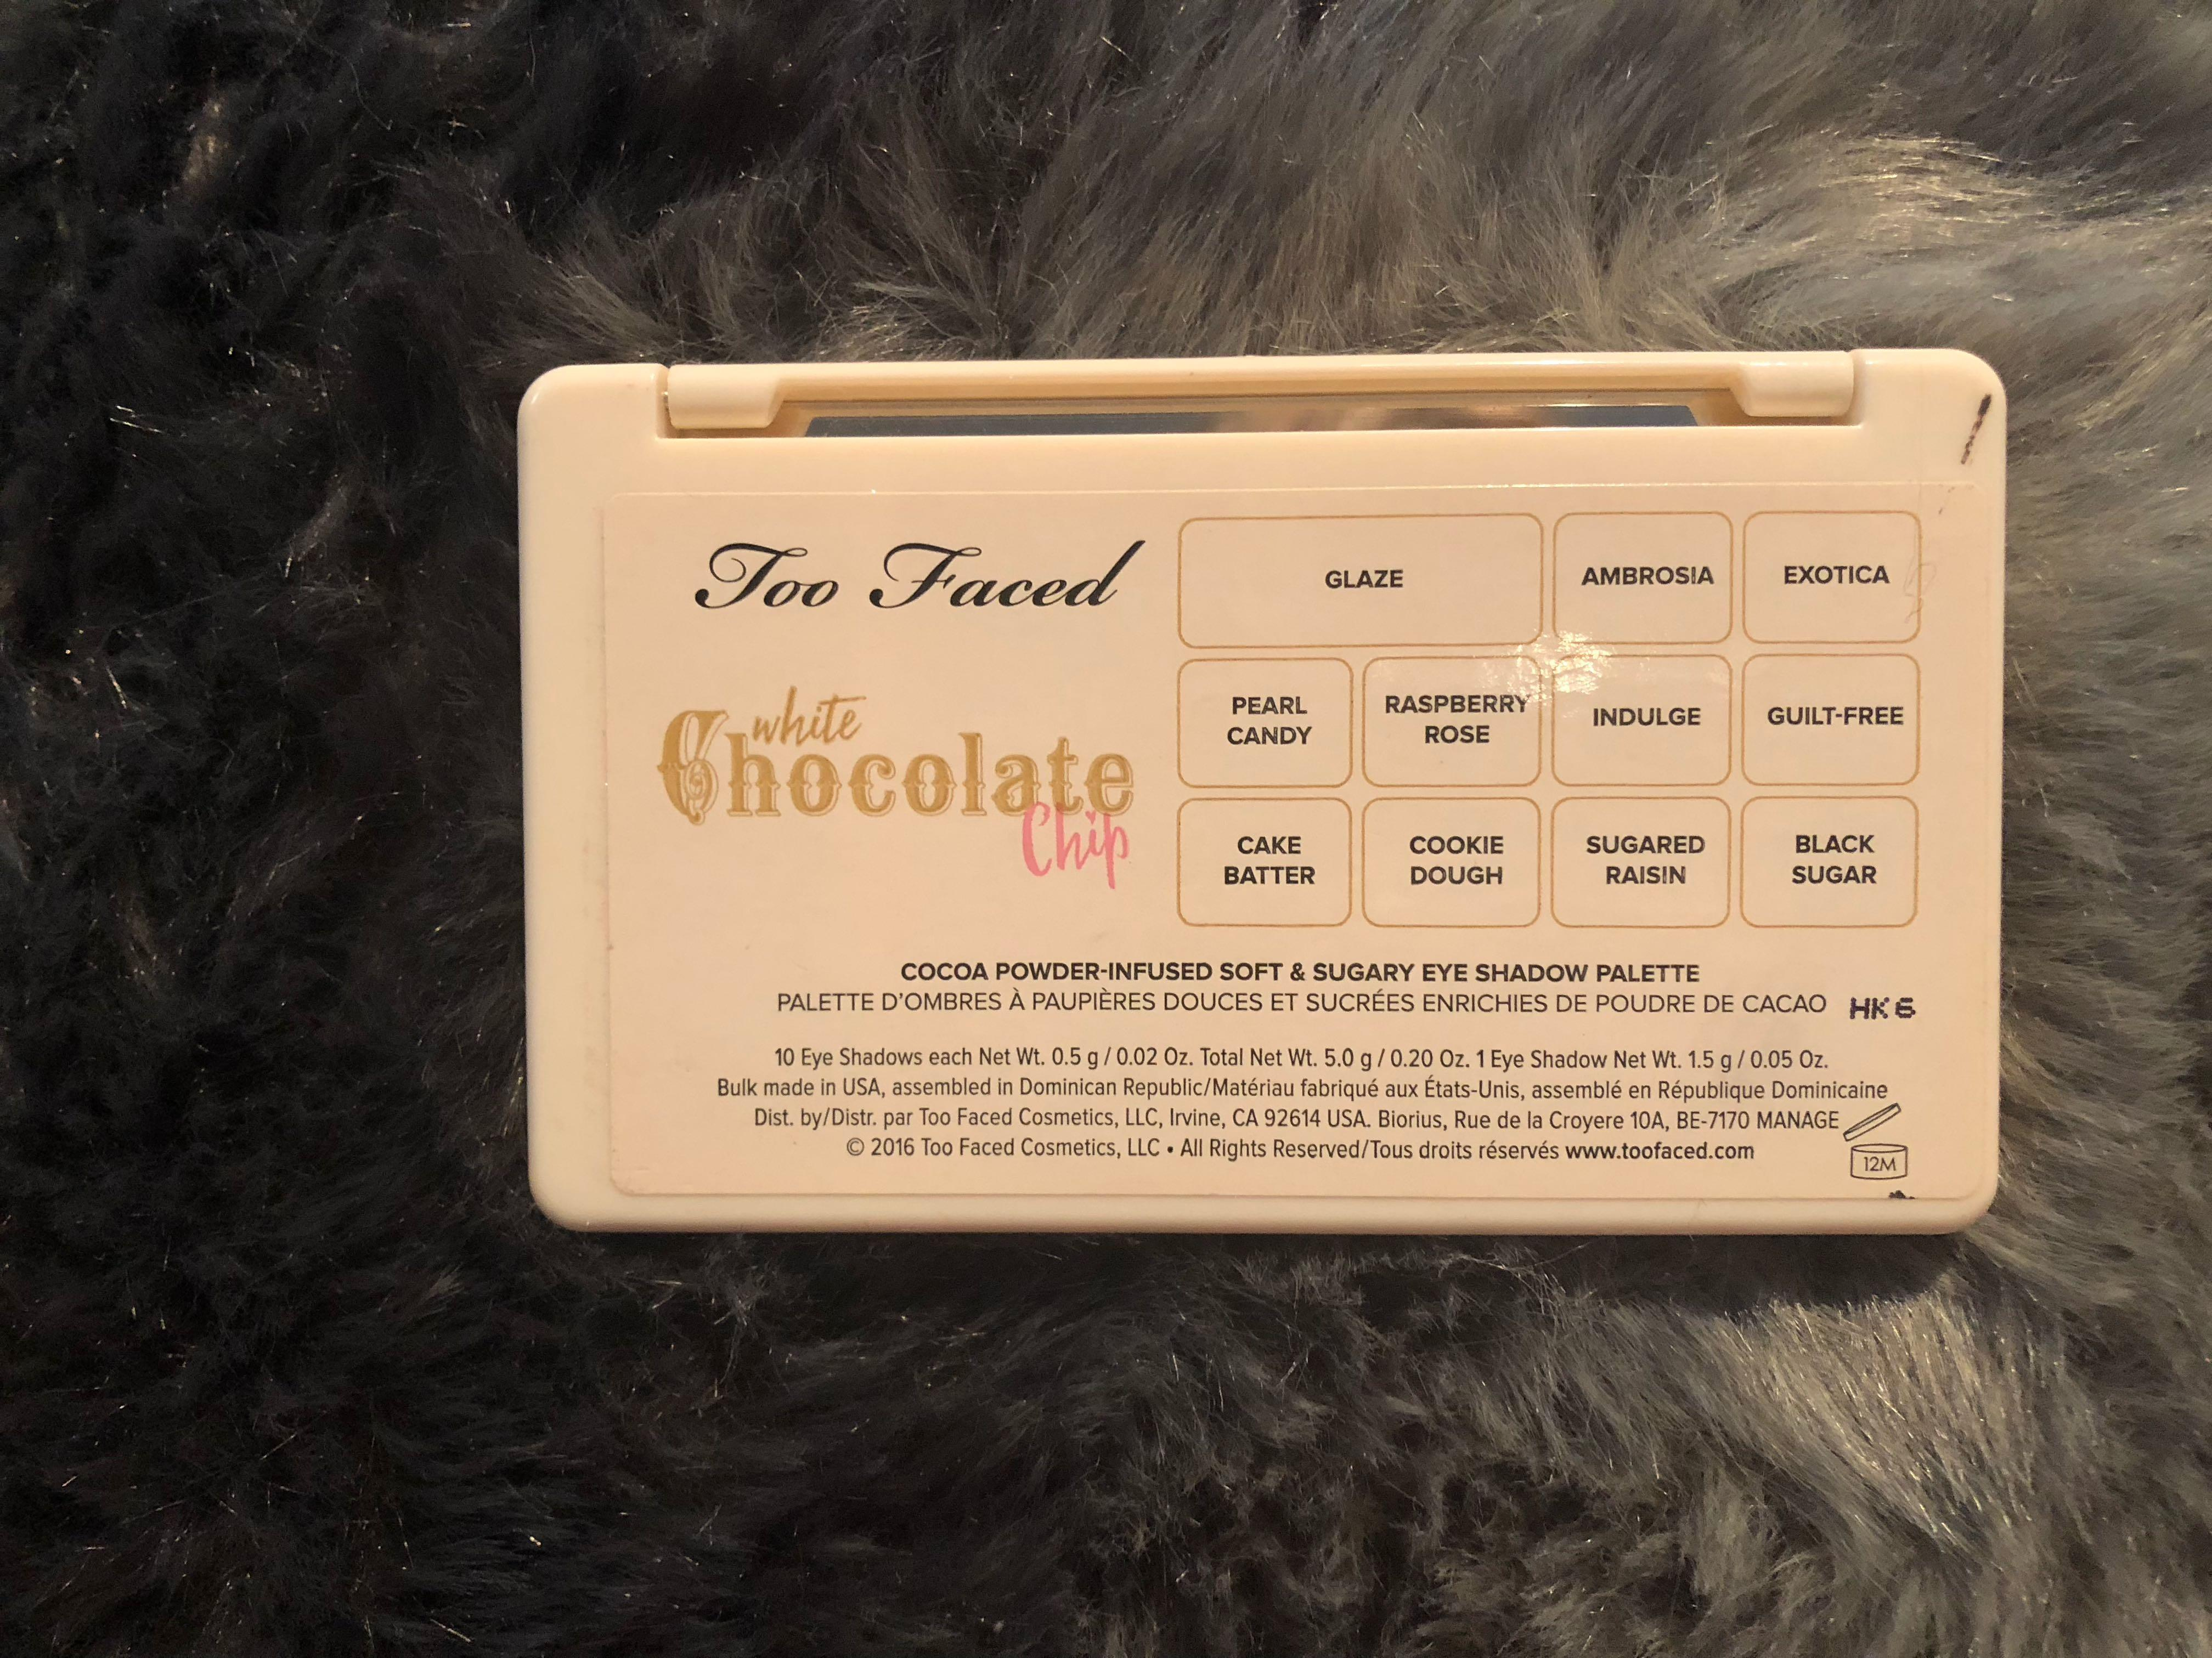 Limited Edition Too Faced White Chocolate Chip Mini Palette